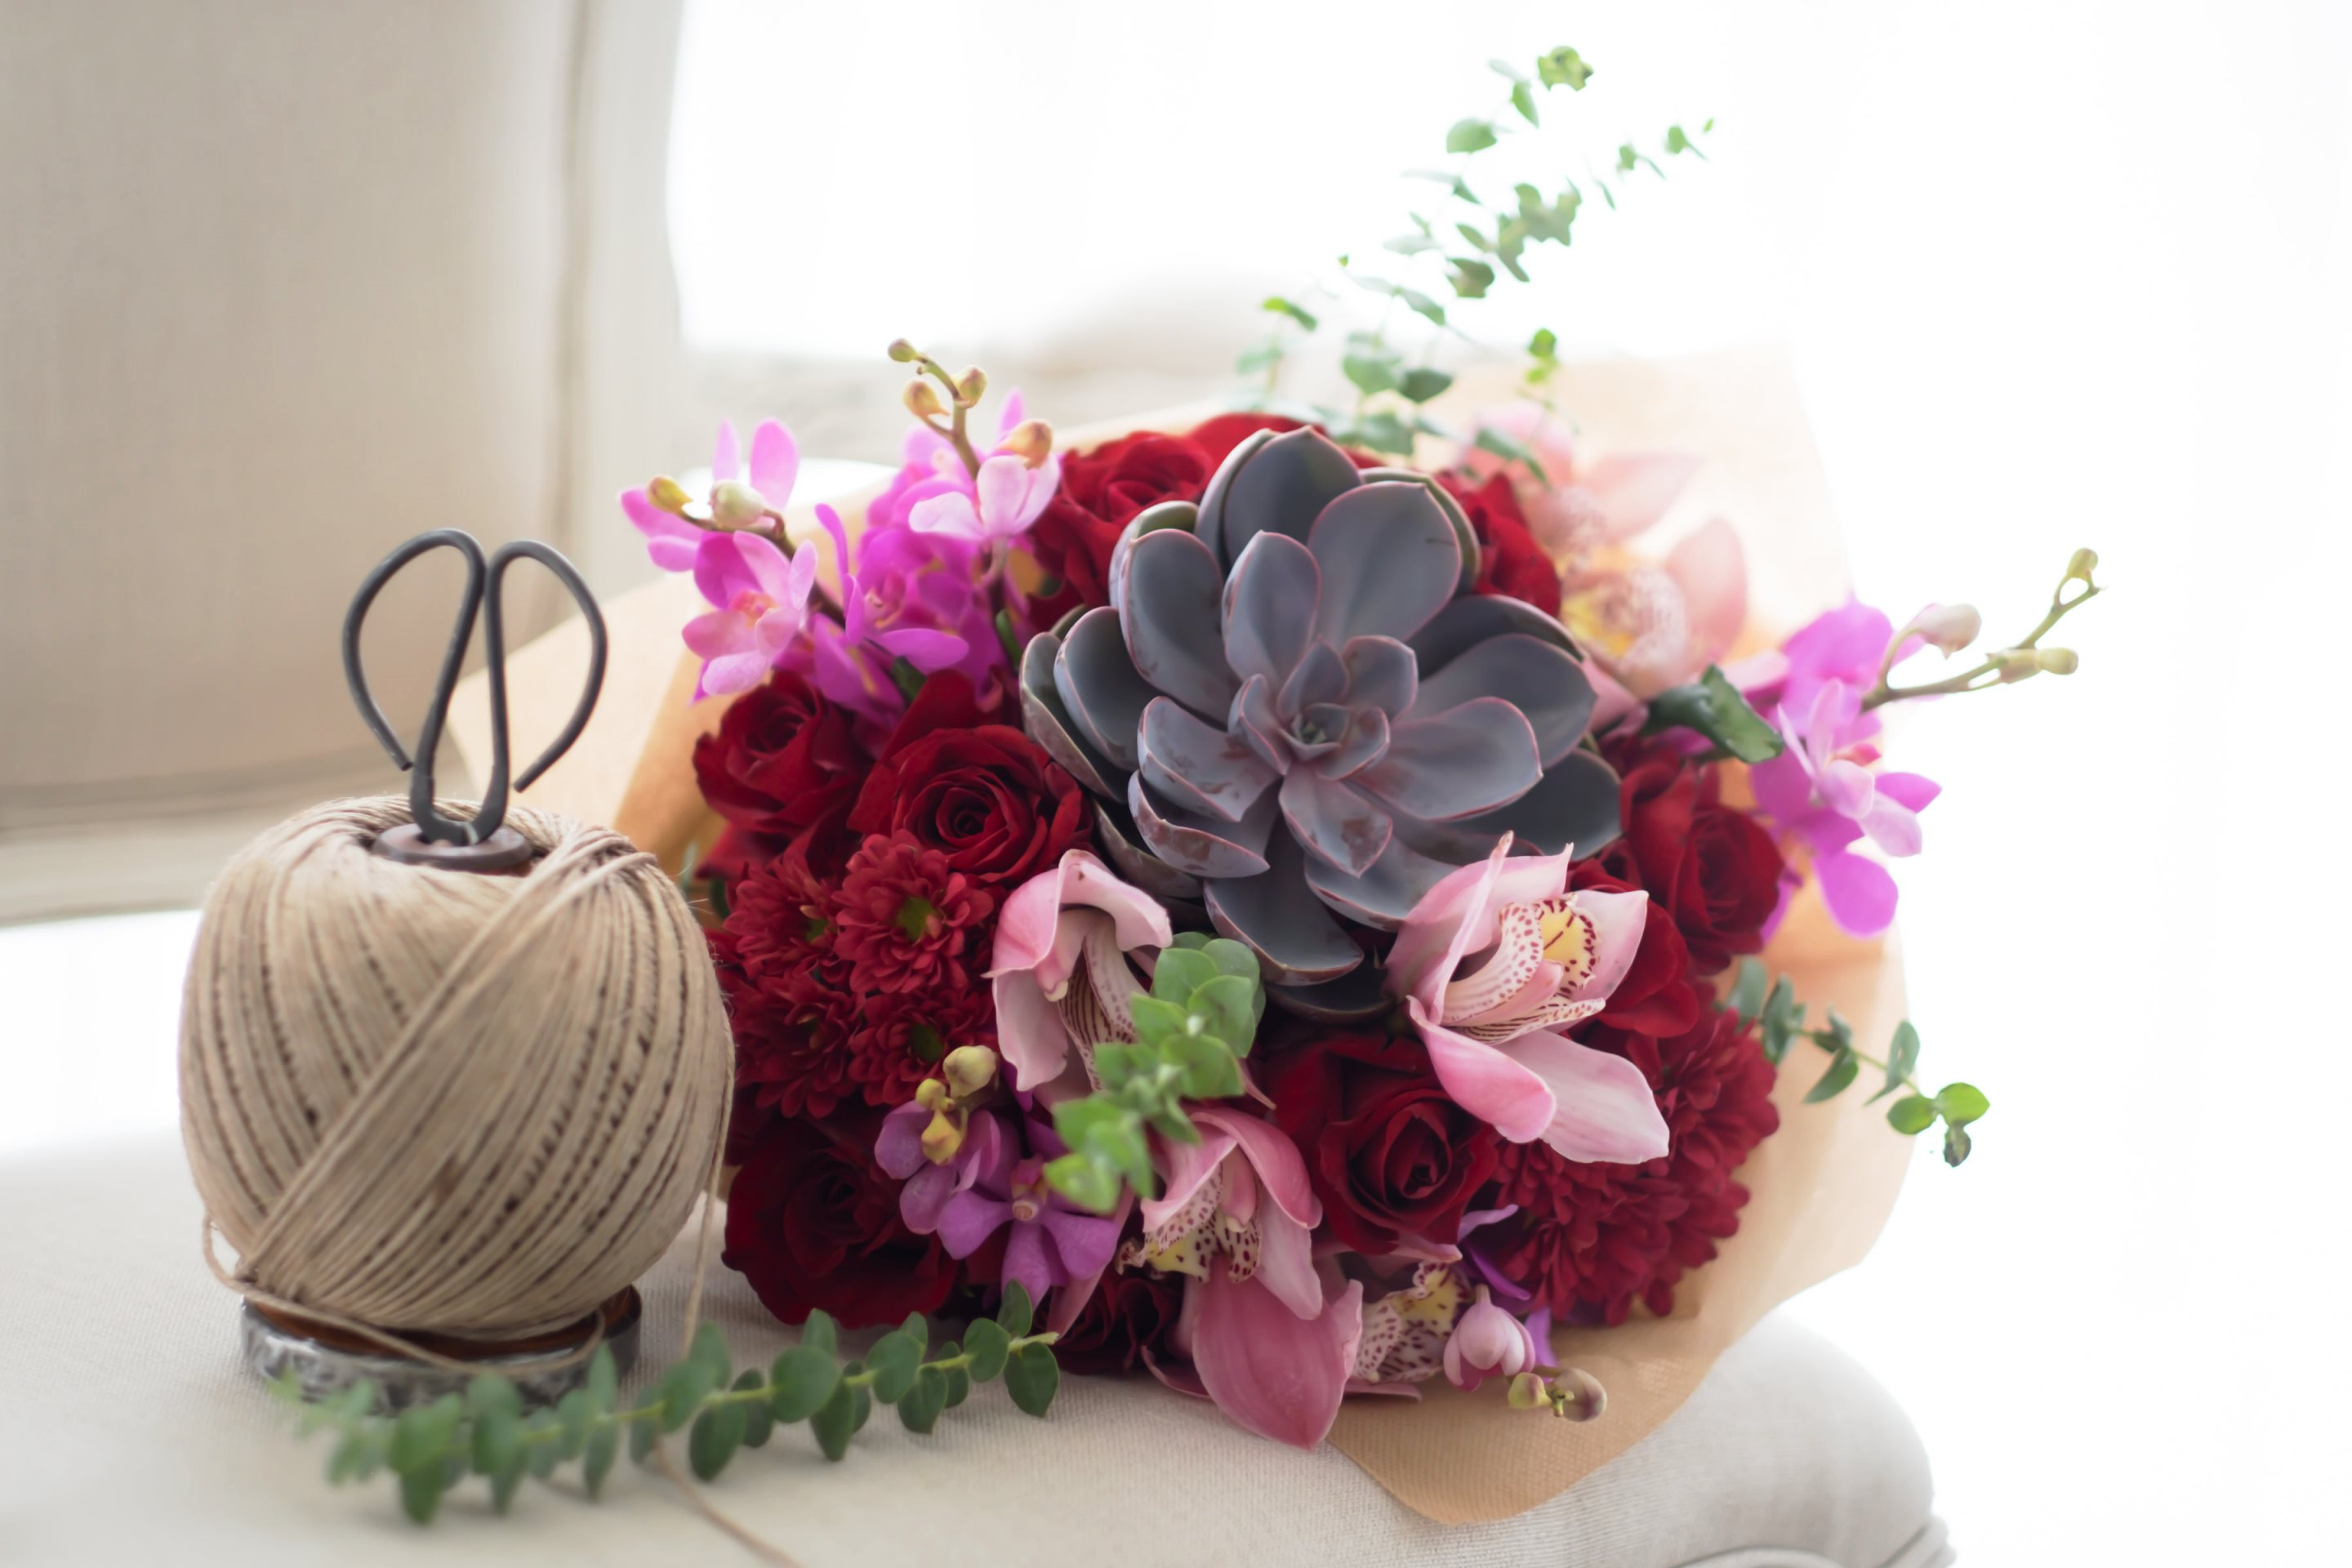 Flower delivery in dubai dubai flower delivery flower delivery flower delivery in dubai dubai flower delivery flower delivery in dubai for cheap izmirmasajfo Image collections